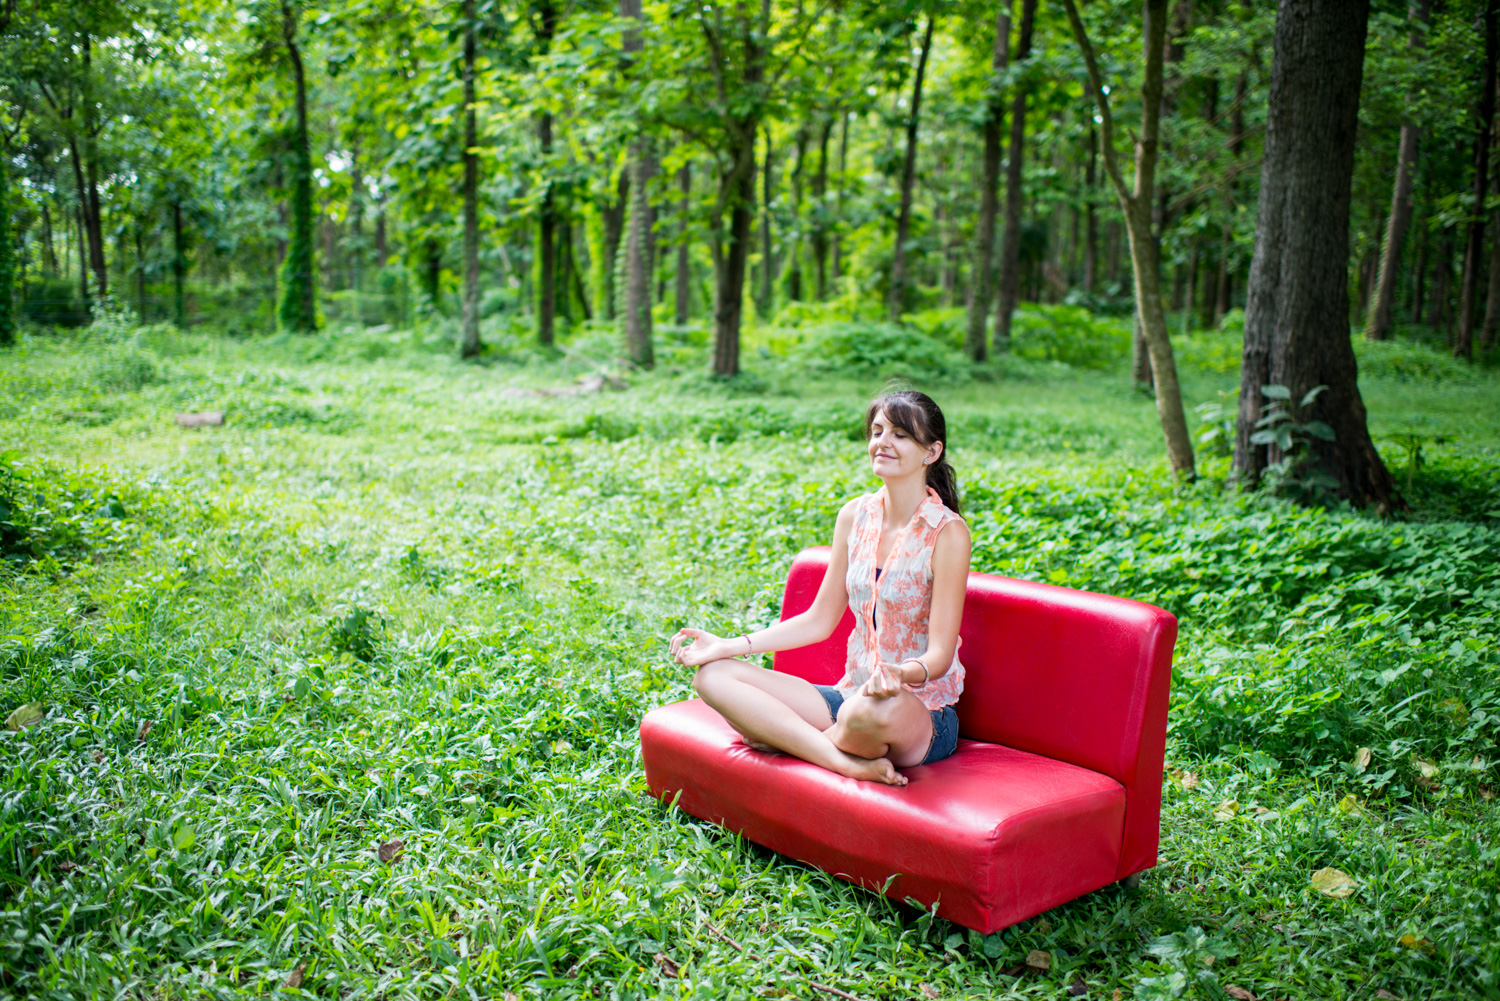 Woman on a red couch outdoors for photographing with intent